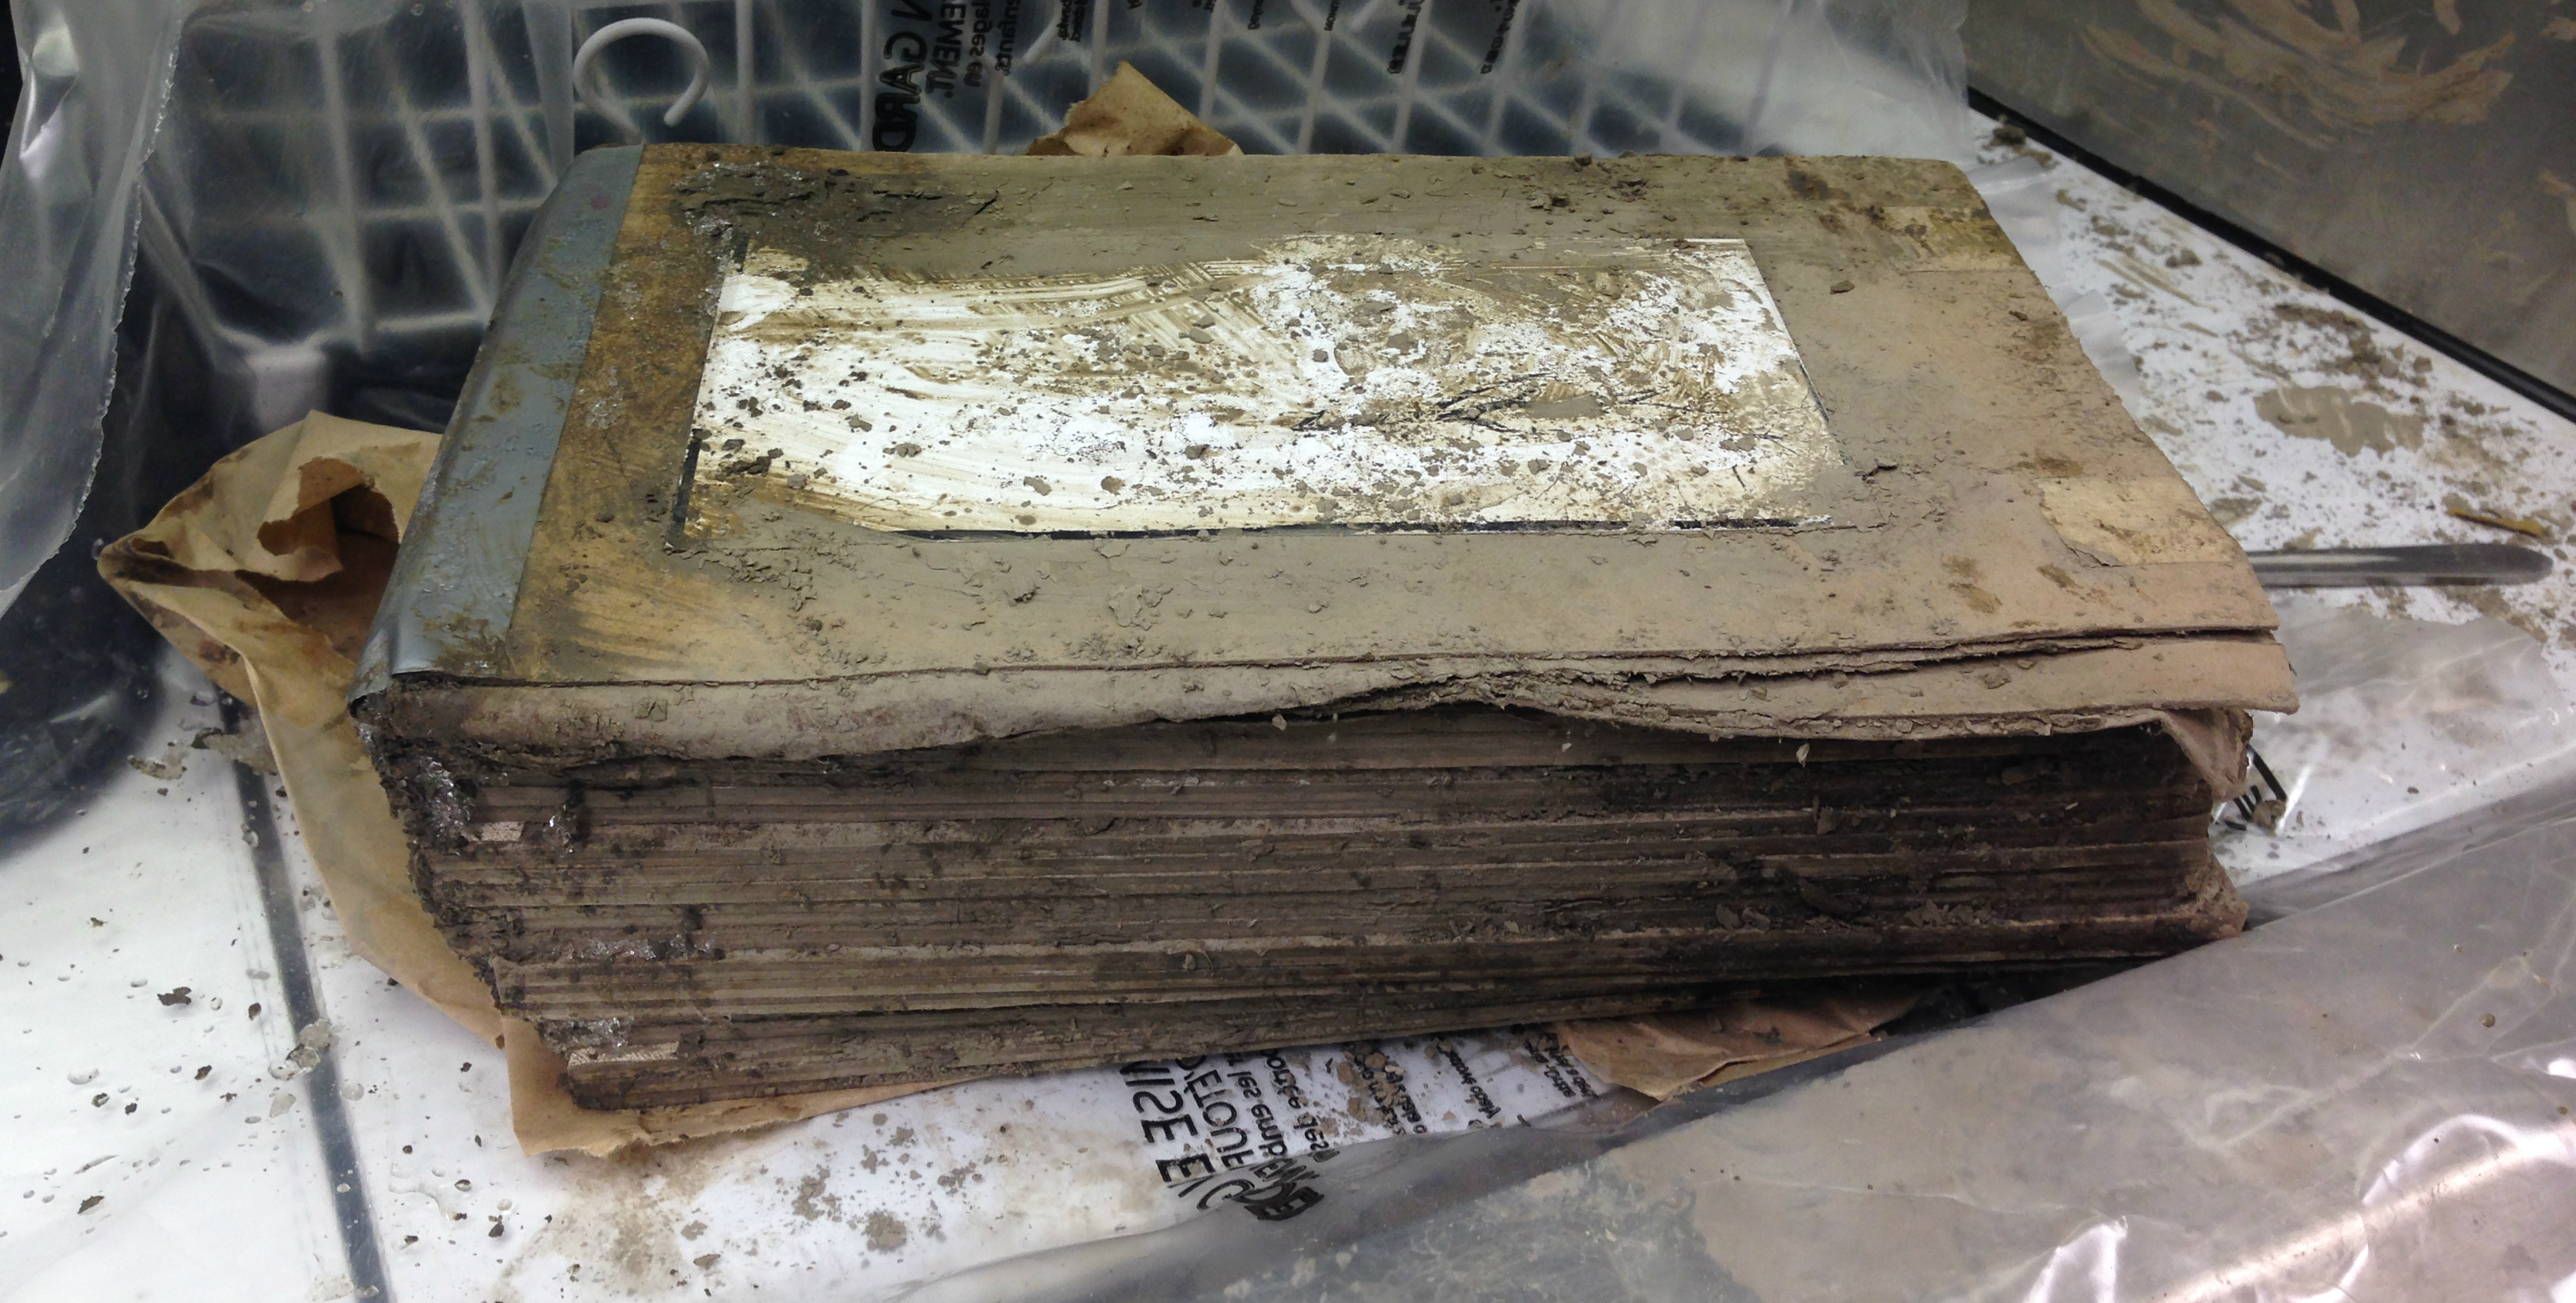 Photograph of a water-damaged and muddy book